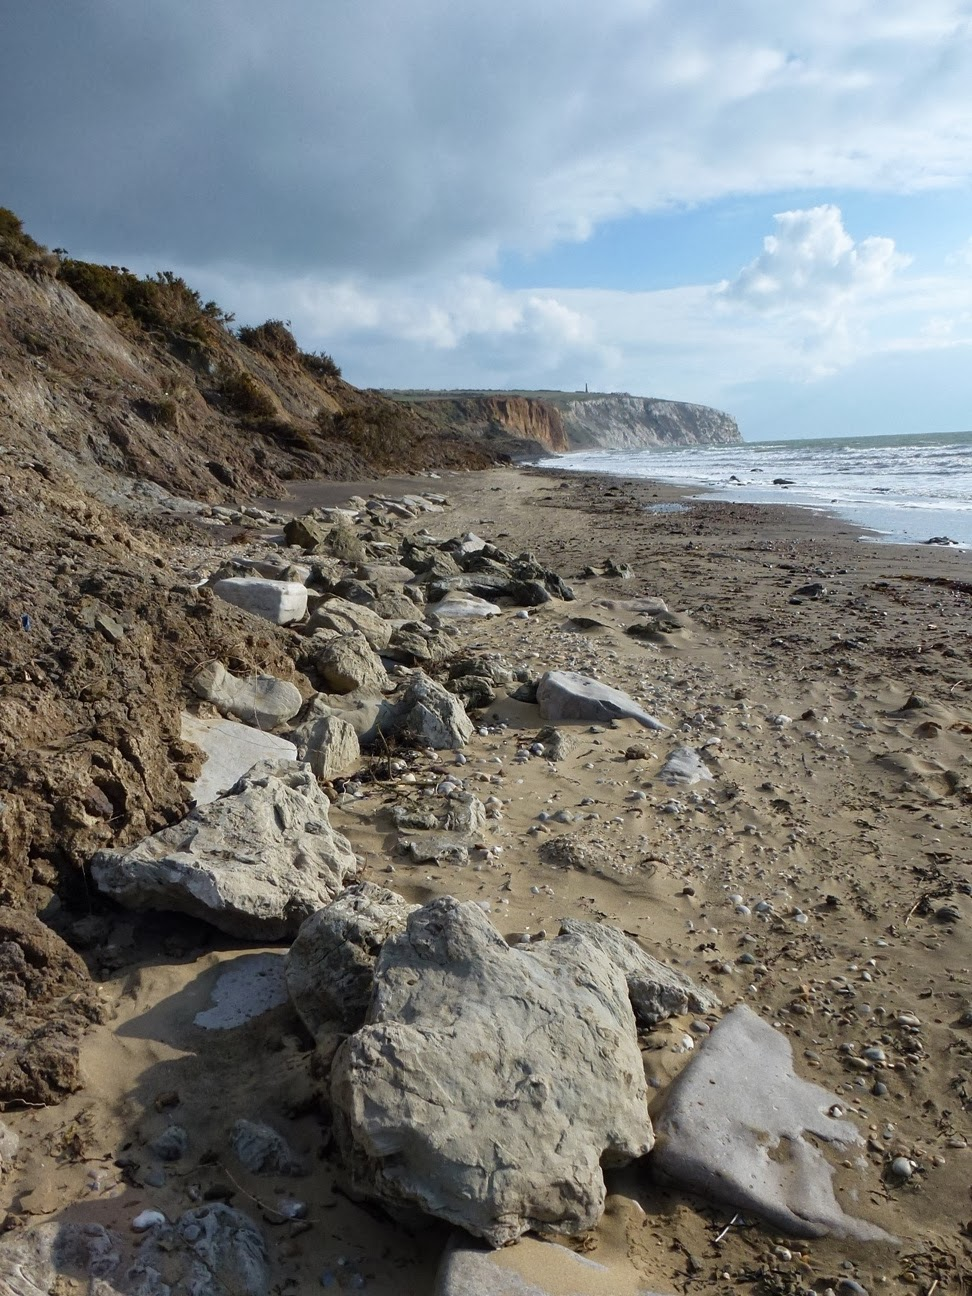 fossilised dinosaur footprints on Yaverland beach